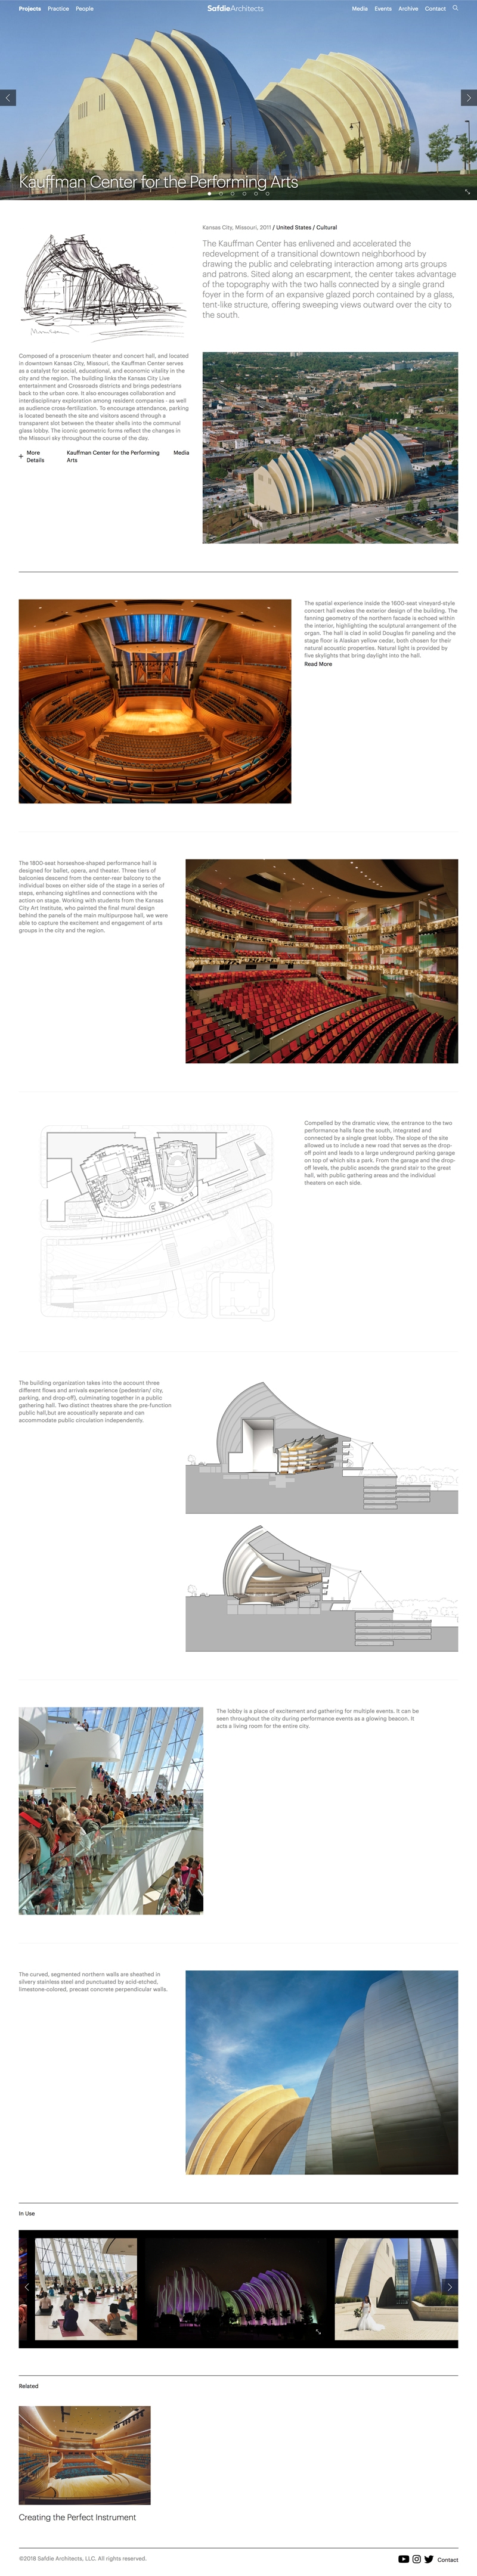 Case study example from Safdie Architects